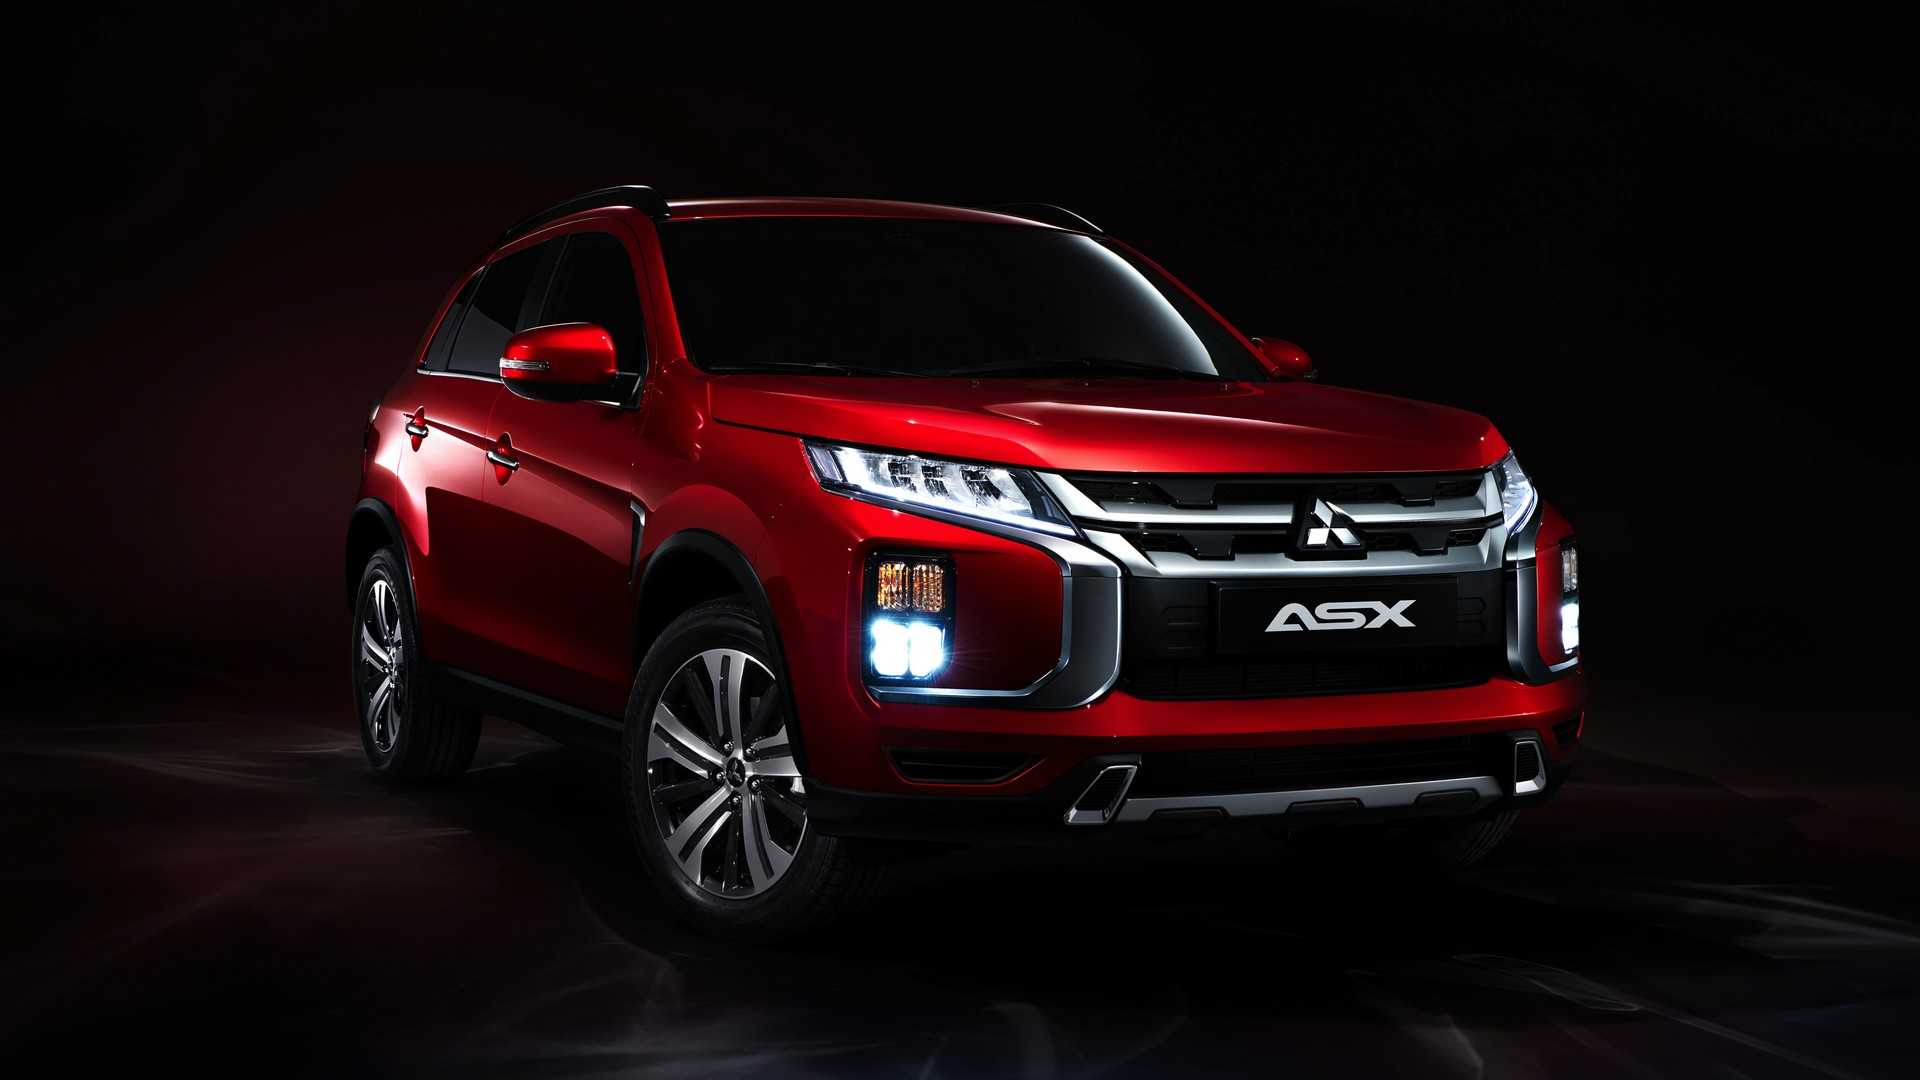 43 New 2020 Mitsubishi Asx Ratings